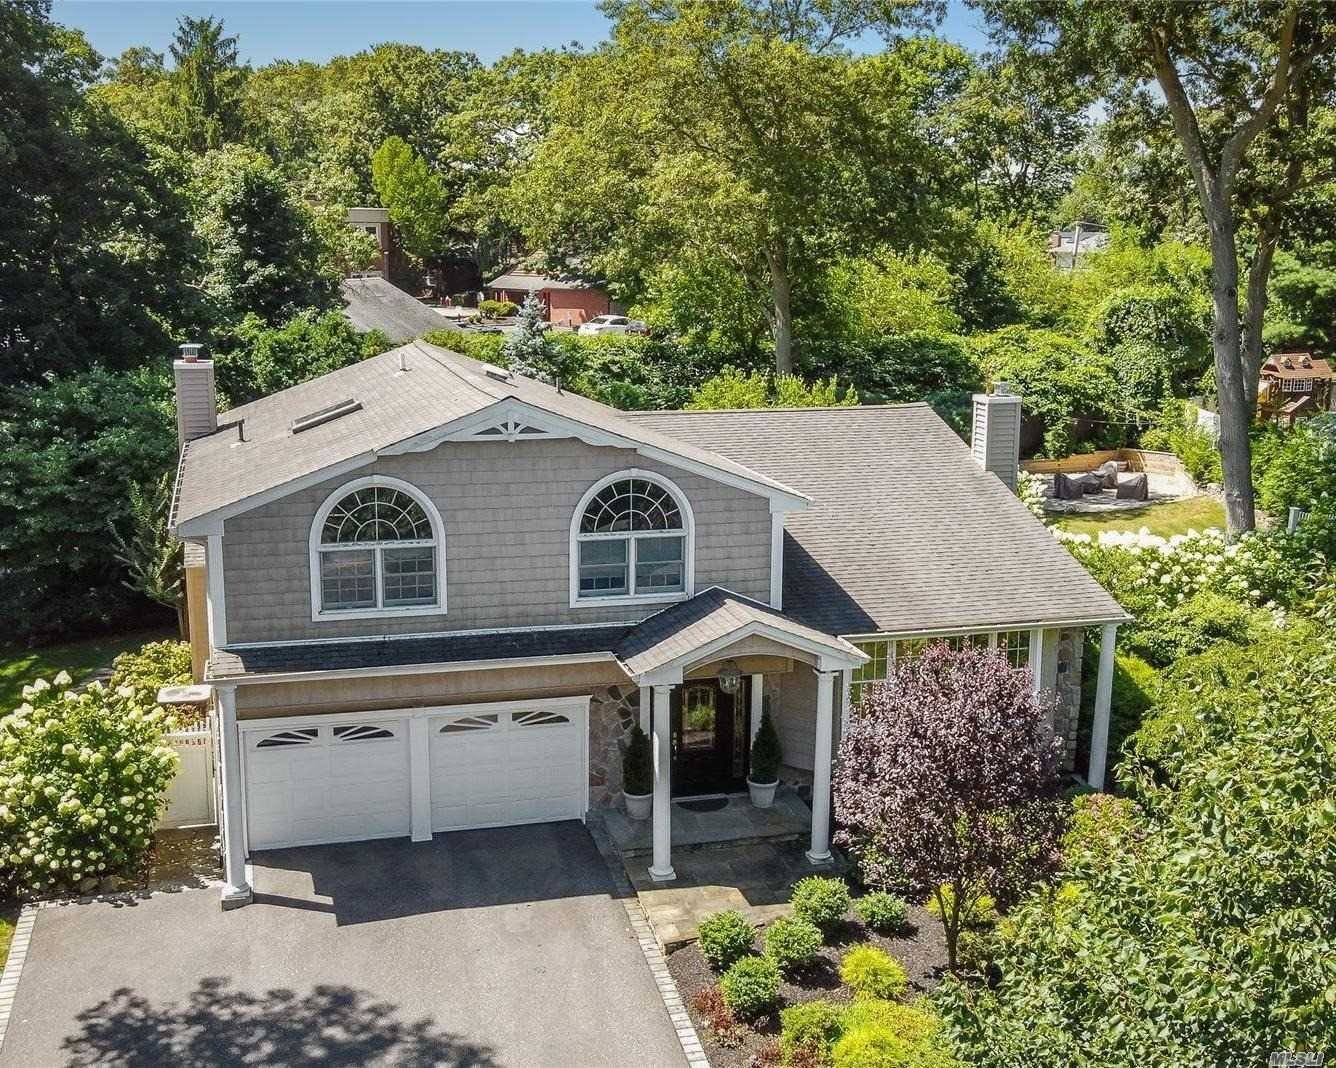 127 Gail Court, East Northport, NY 11731 - MLS#: 3239741